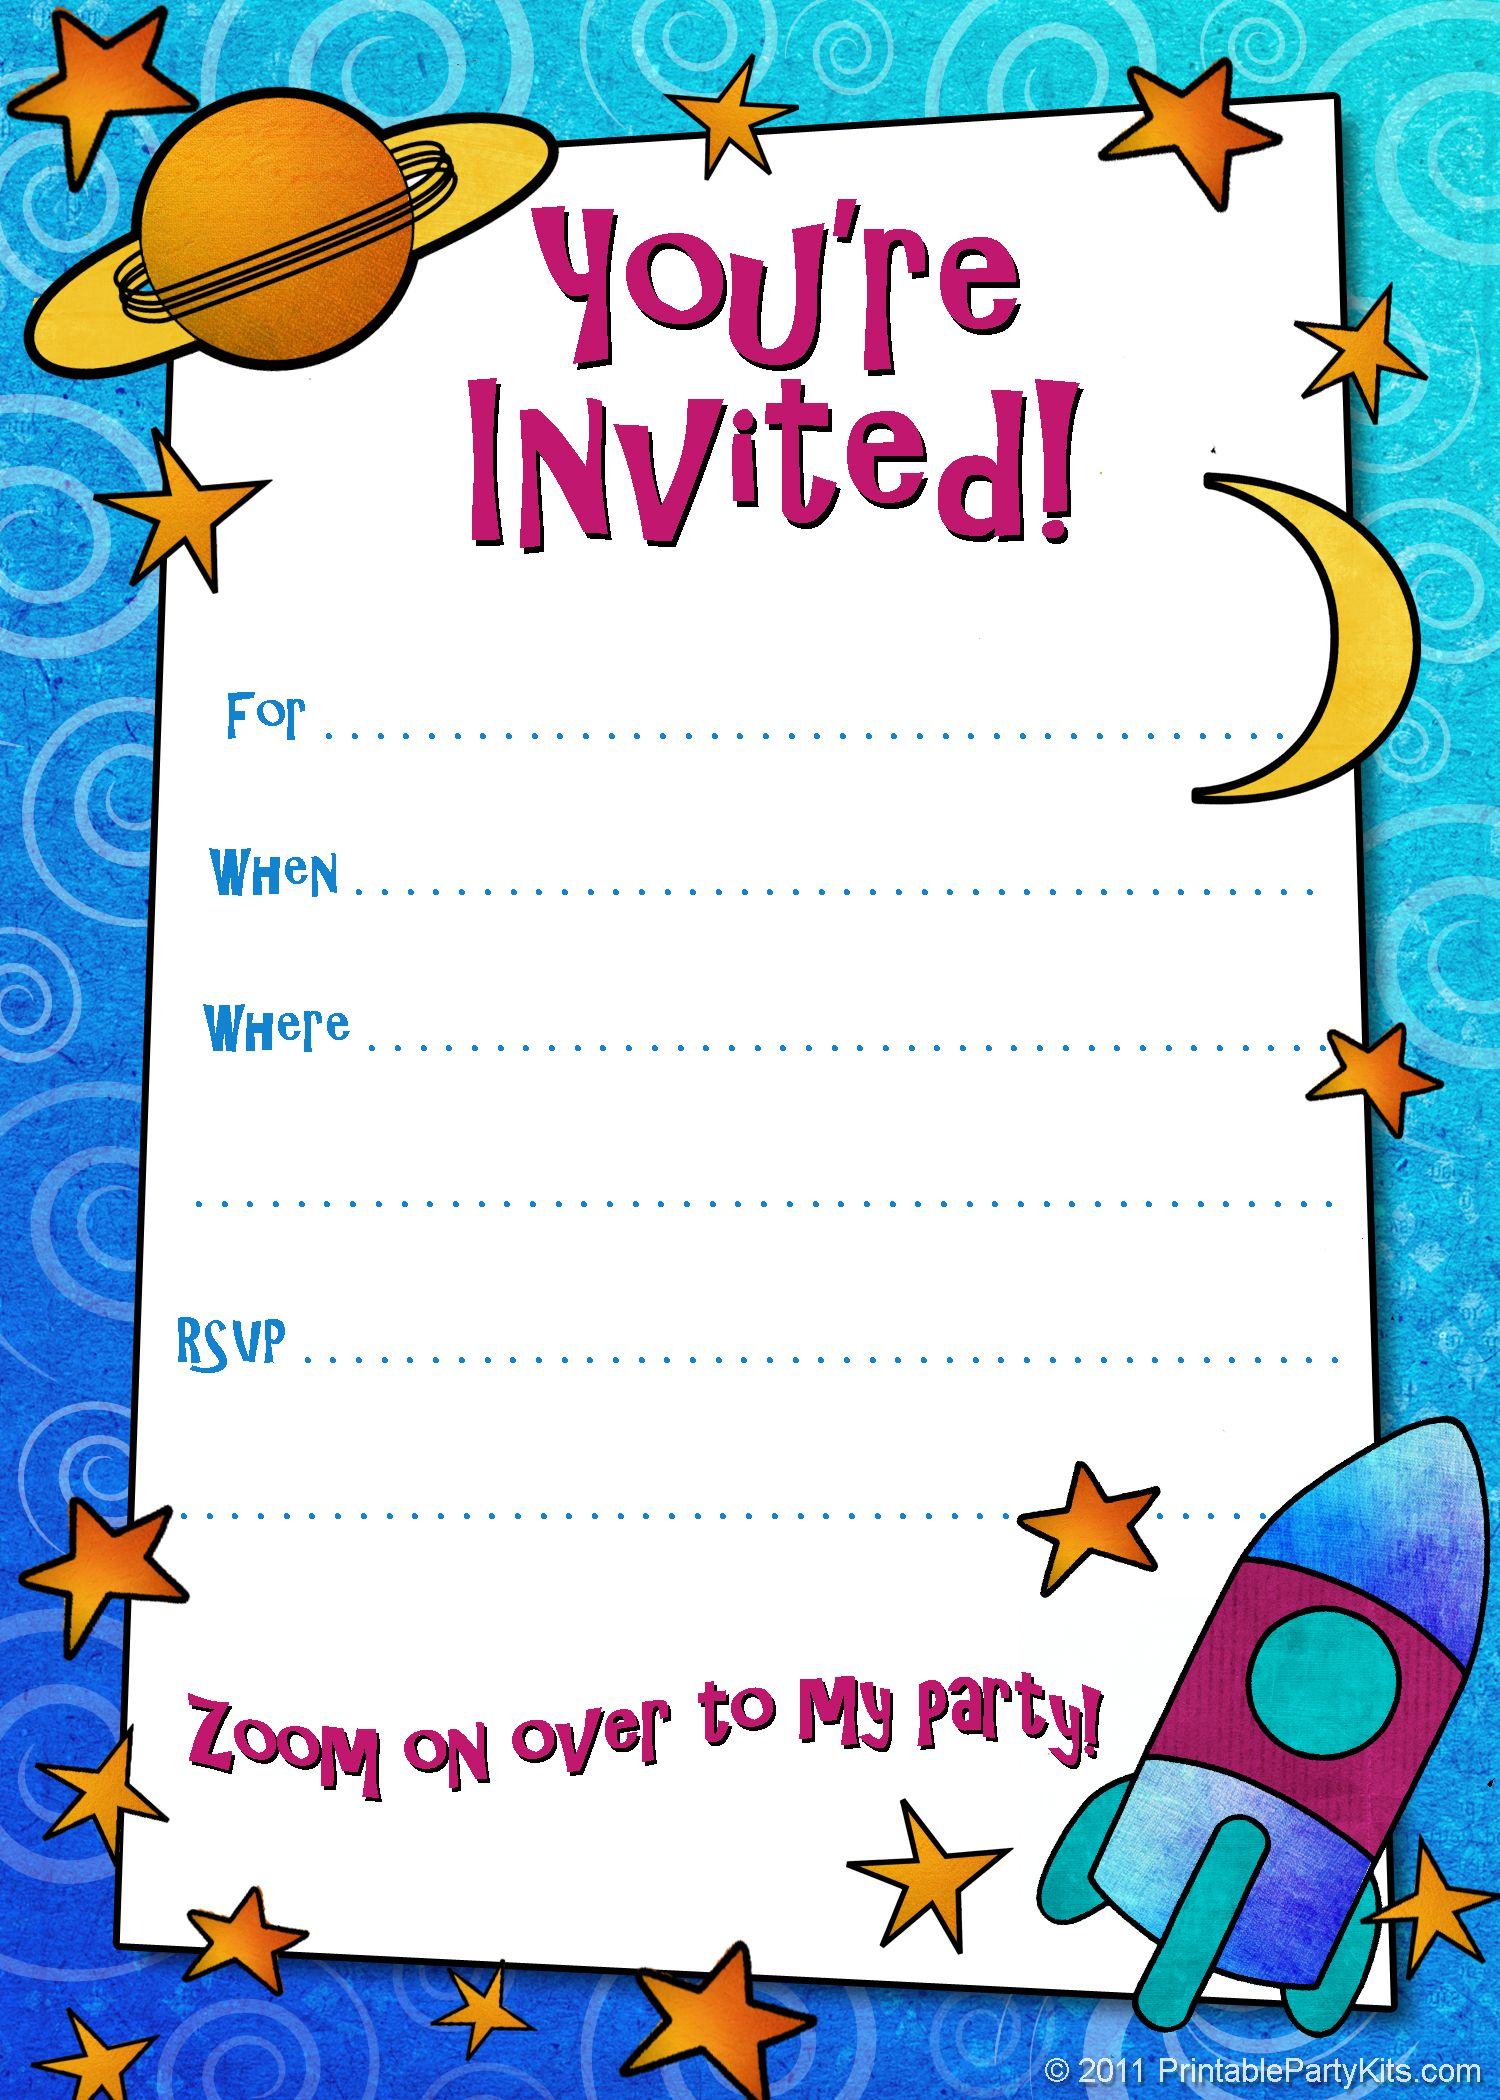 Free Printable Boys Birthday Party Invitations Boy Birthday - Party invitation template: free printable birthday party invitation templates